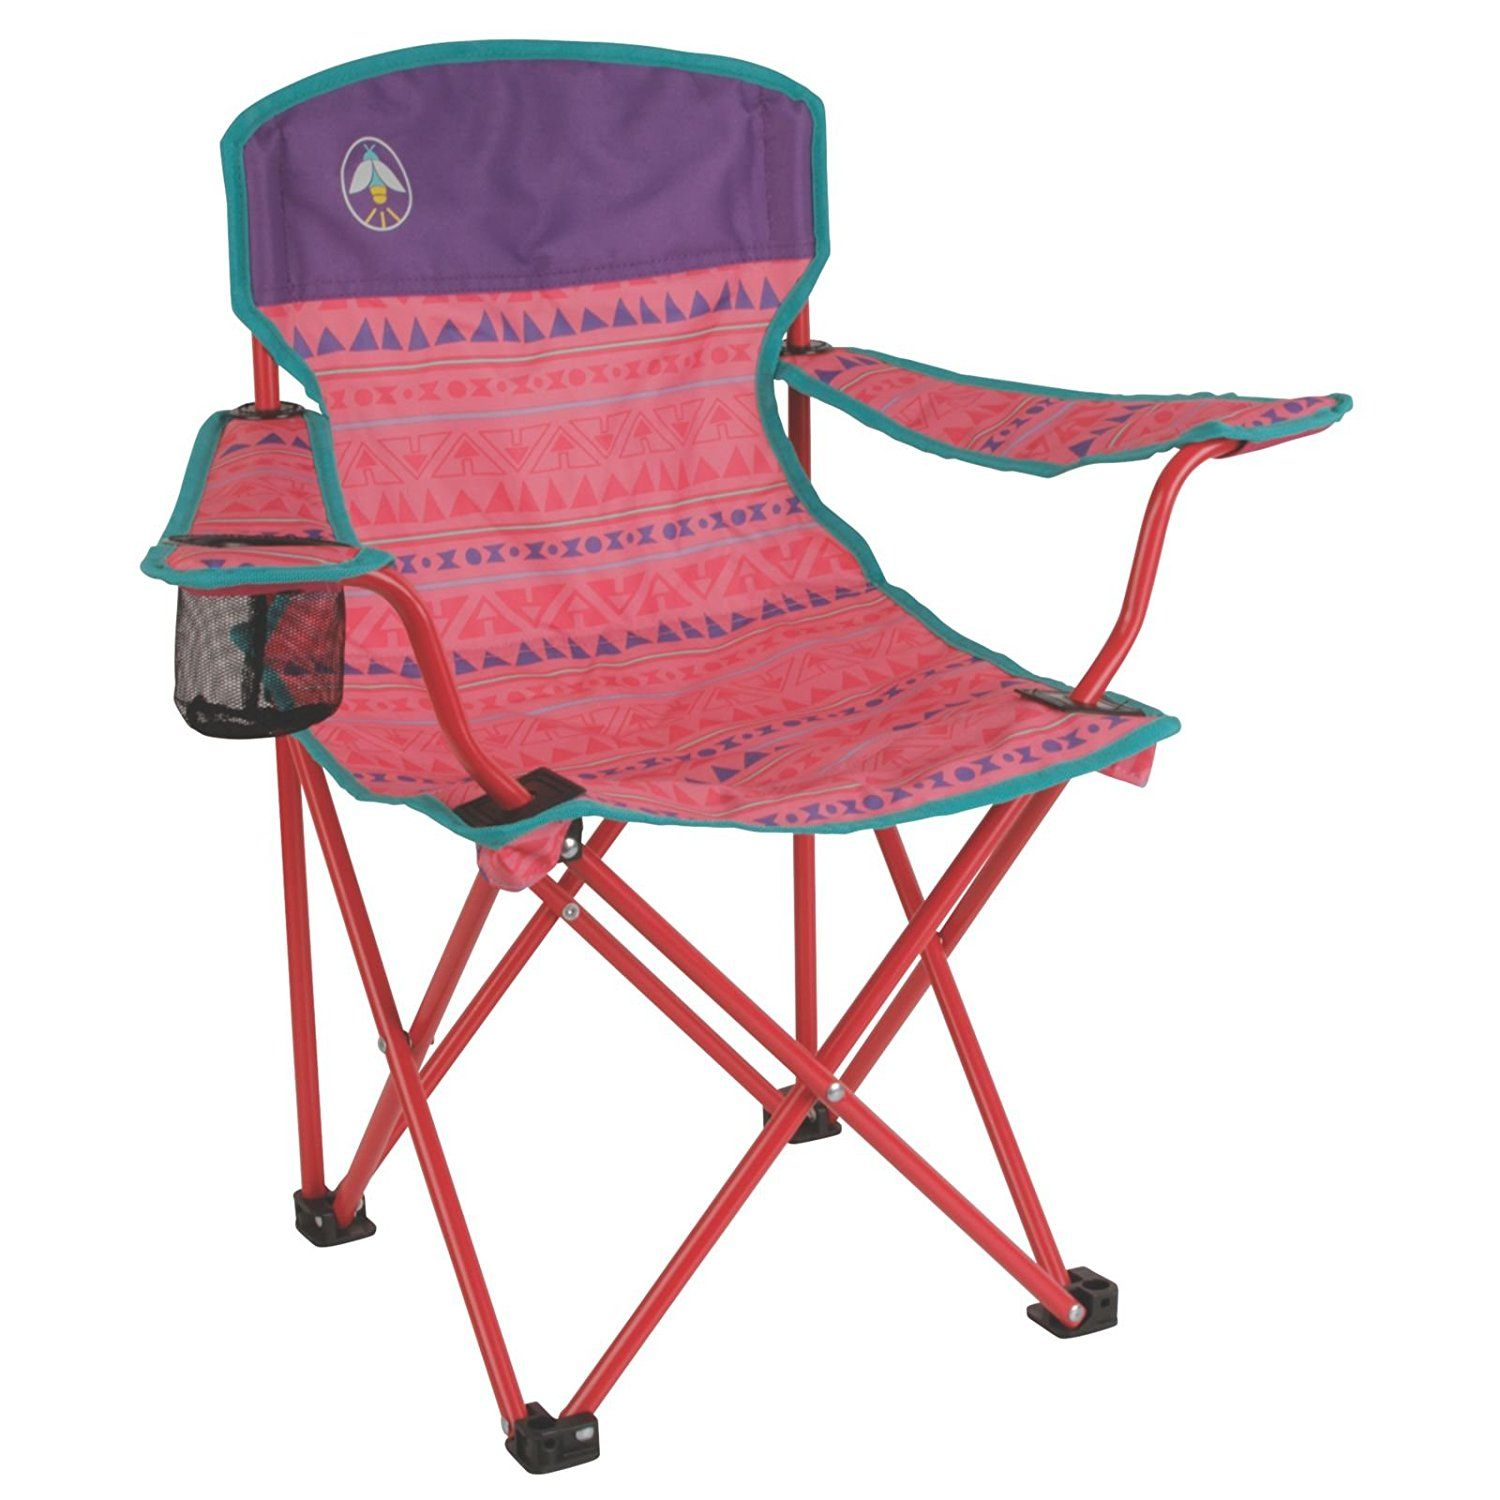 Folding camping chairs with footrest - Furniture